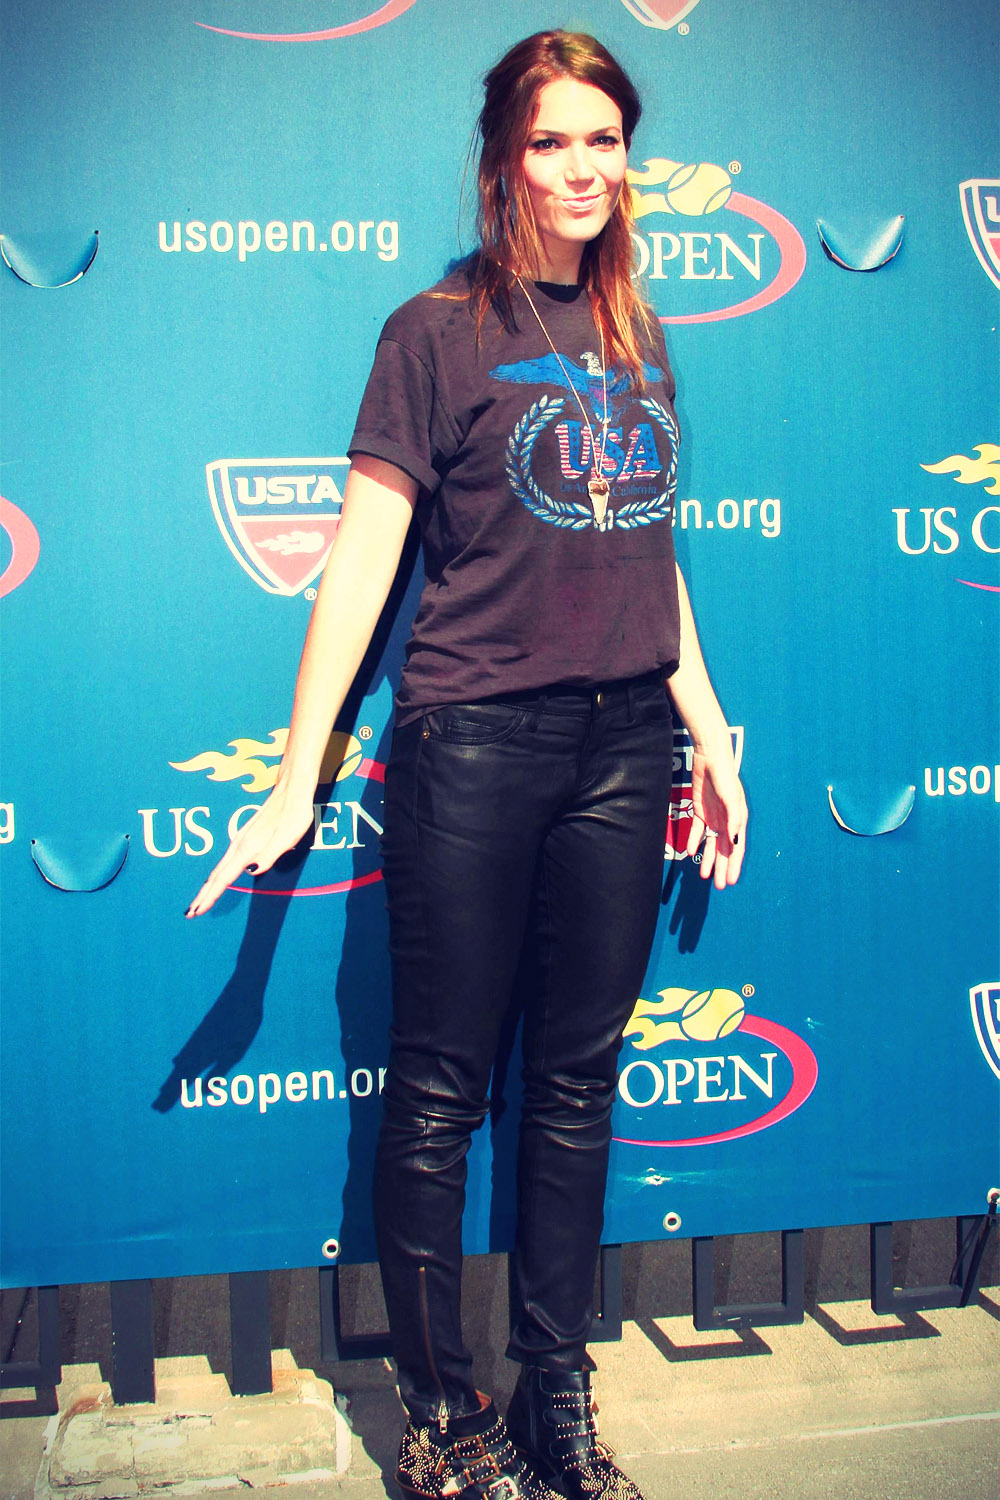 Mandy Moore at the 2012 U.S. Open